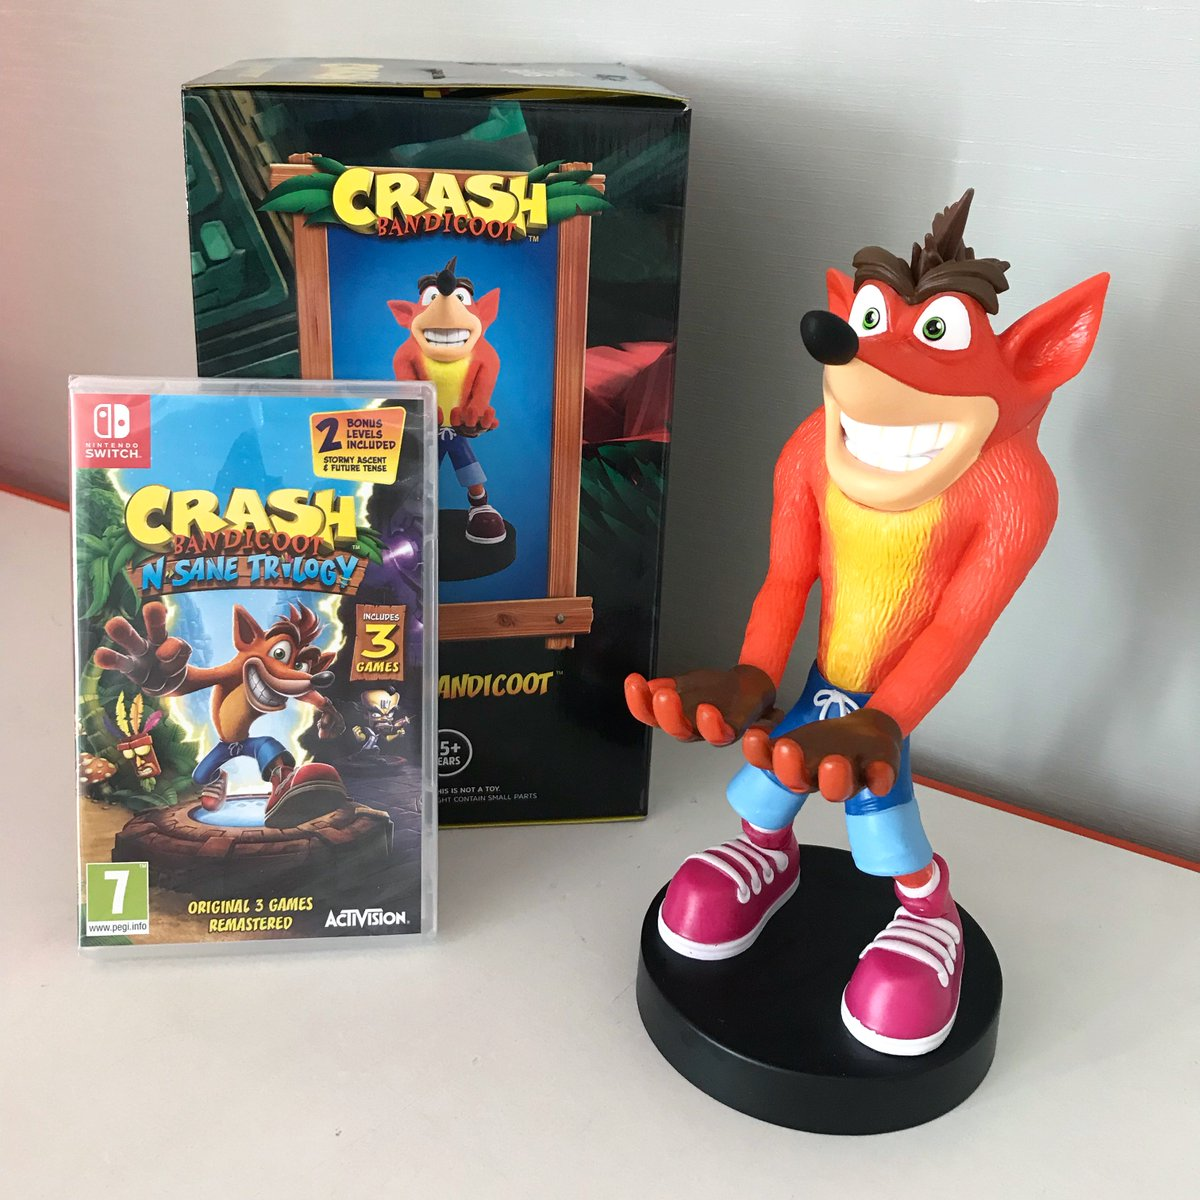 Fabiano Costa Fchinaskipt Twitter Ps4 Tekken 7 Region 3 Bonus Lego Toys Winner Announced Monday 9 18 At 3pm Competition Giveaway Crashbandicoot Nintendoswitchpic L0xrevk6bt